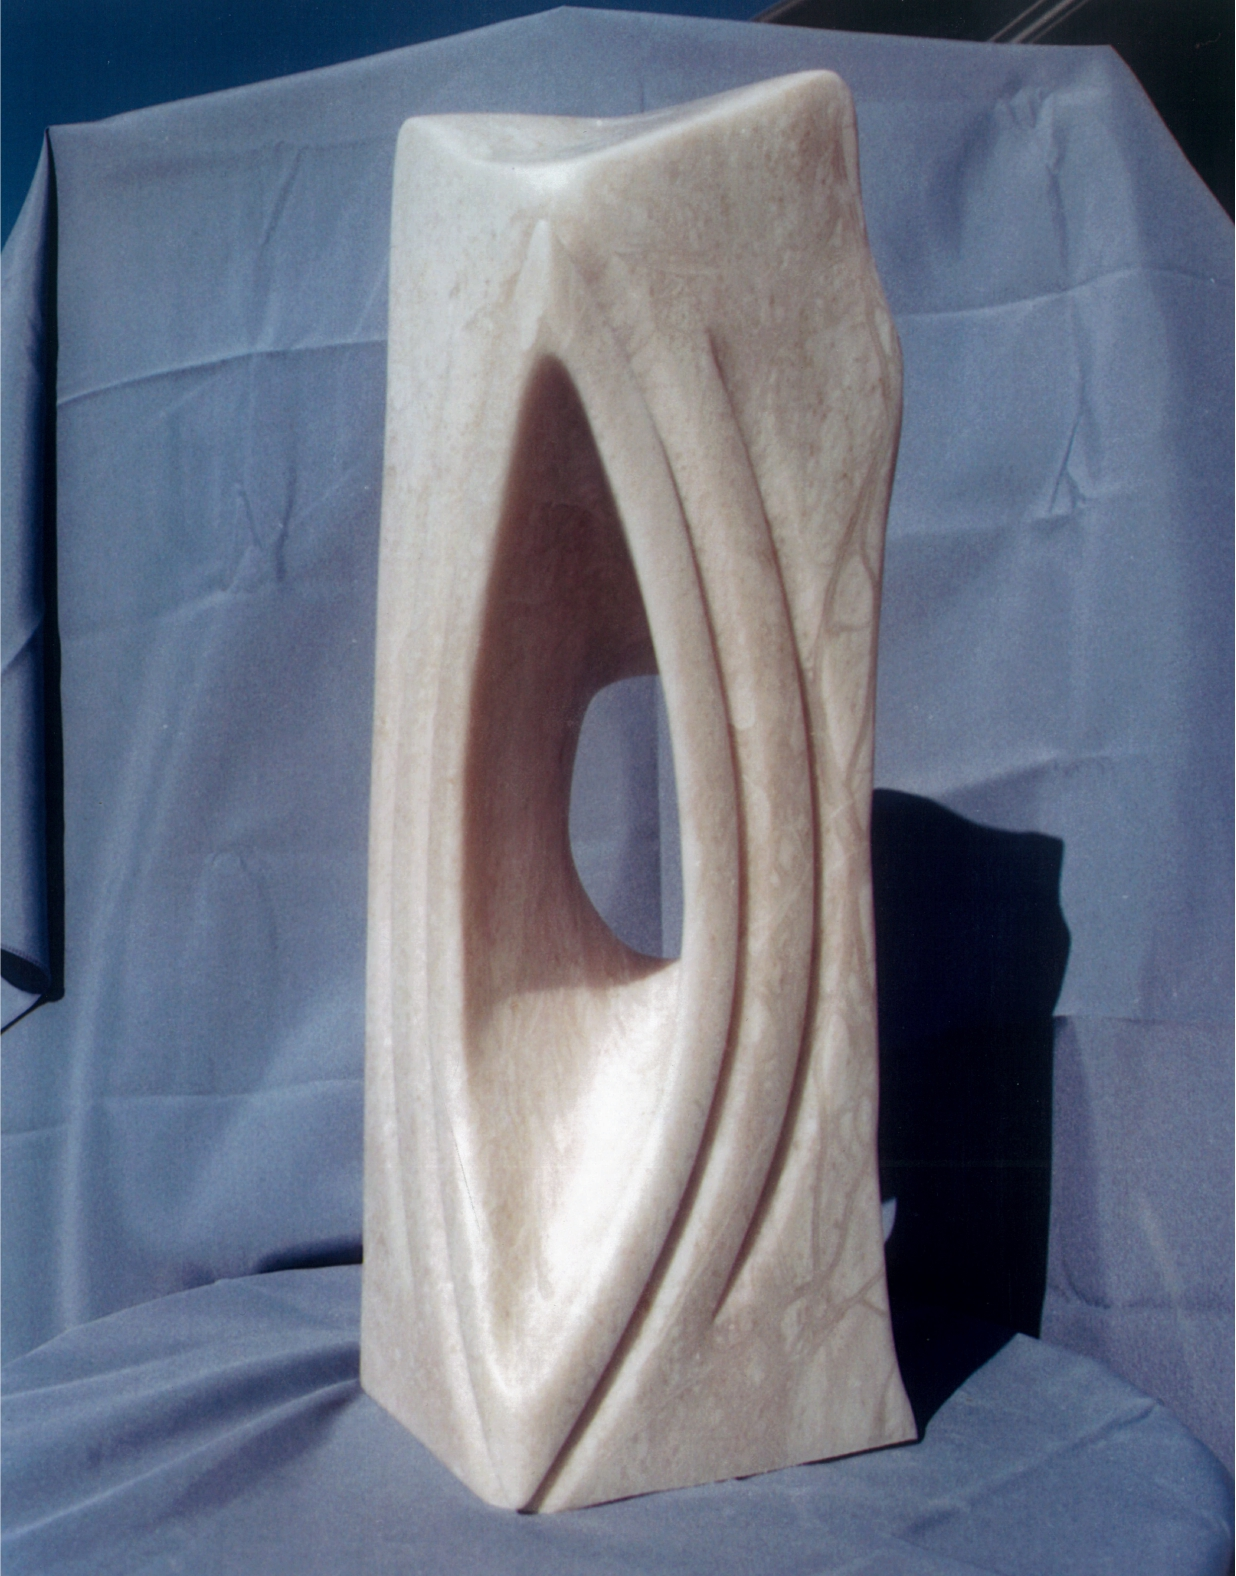 Angel's Eye - 1999 - Carved from Italian White Alabaster. Artist: Steven Zimmerman